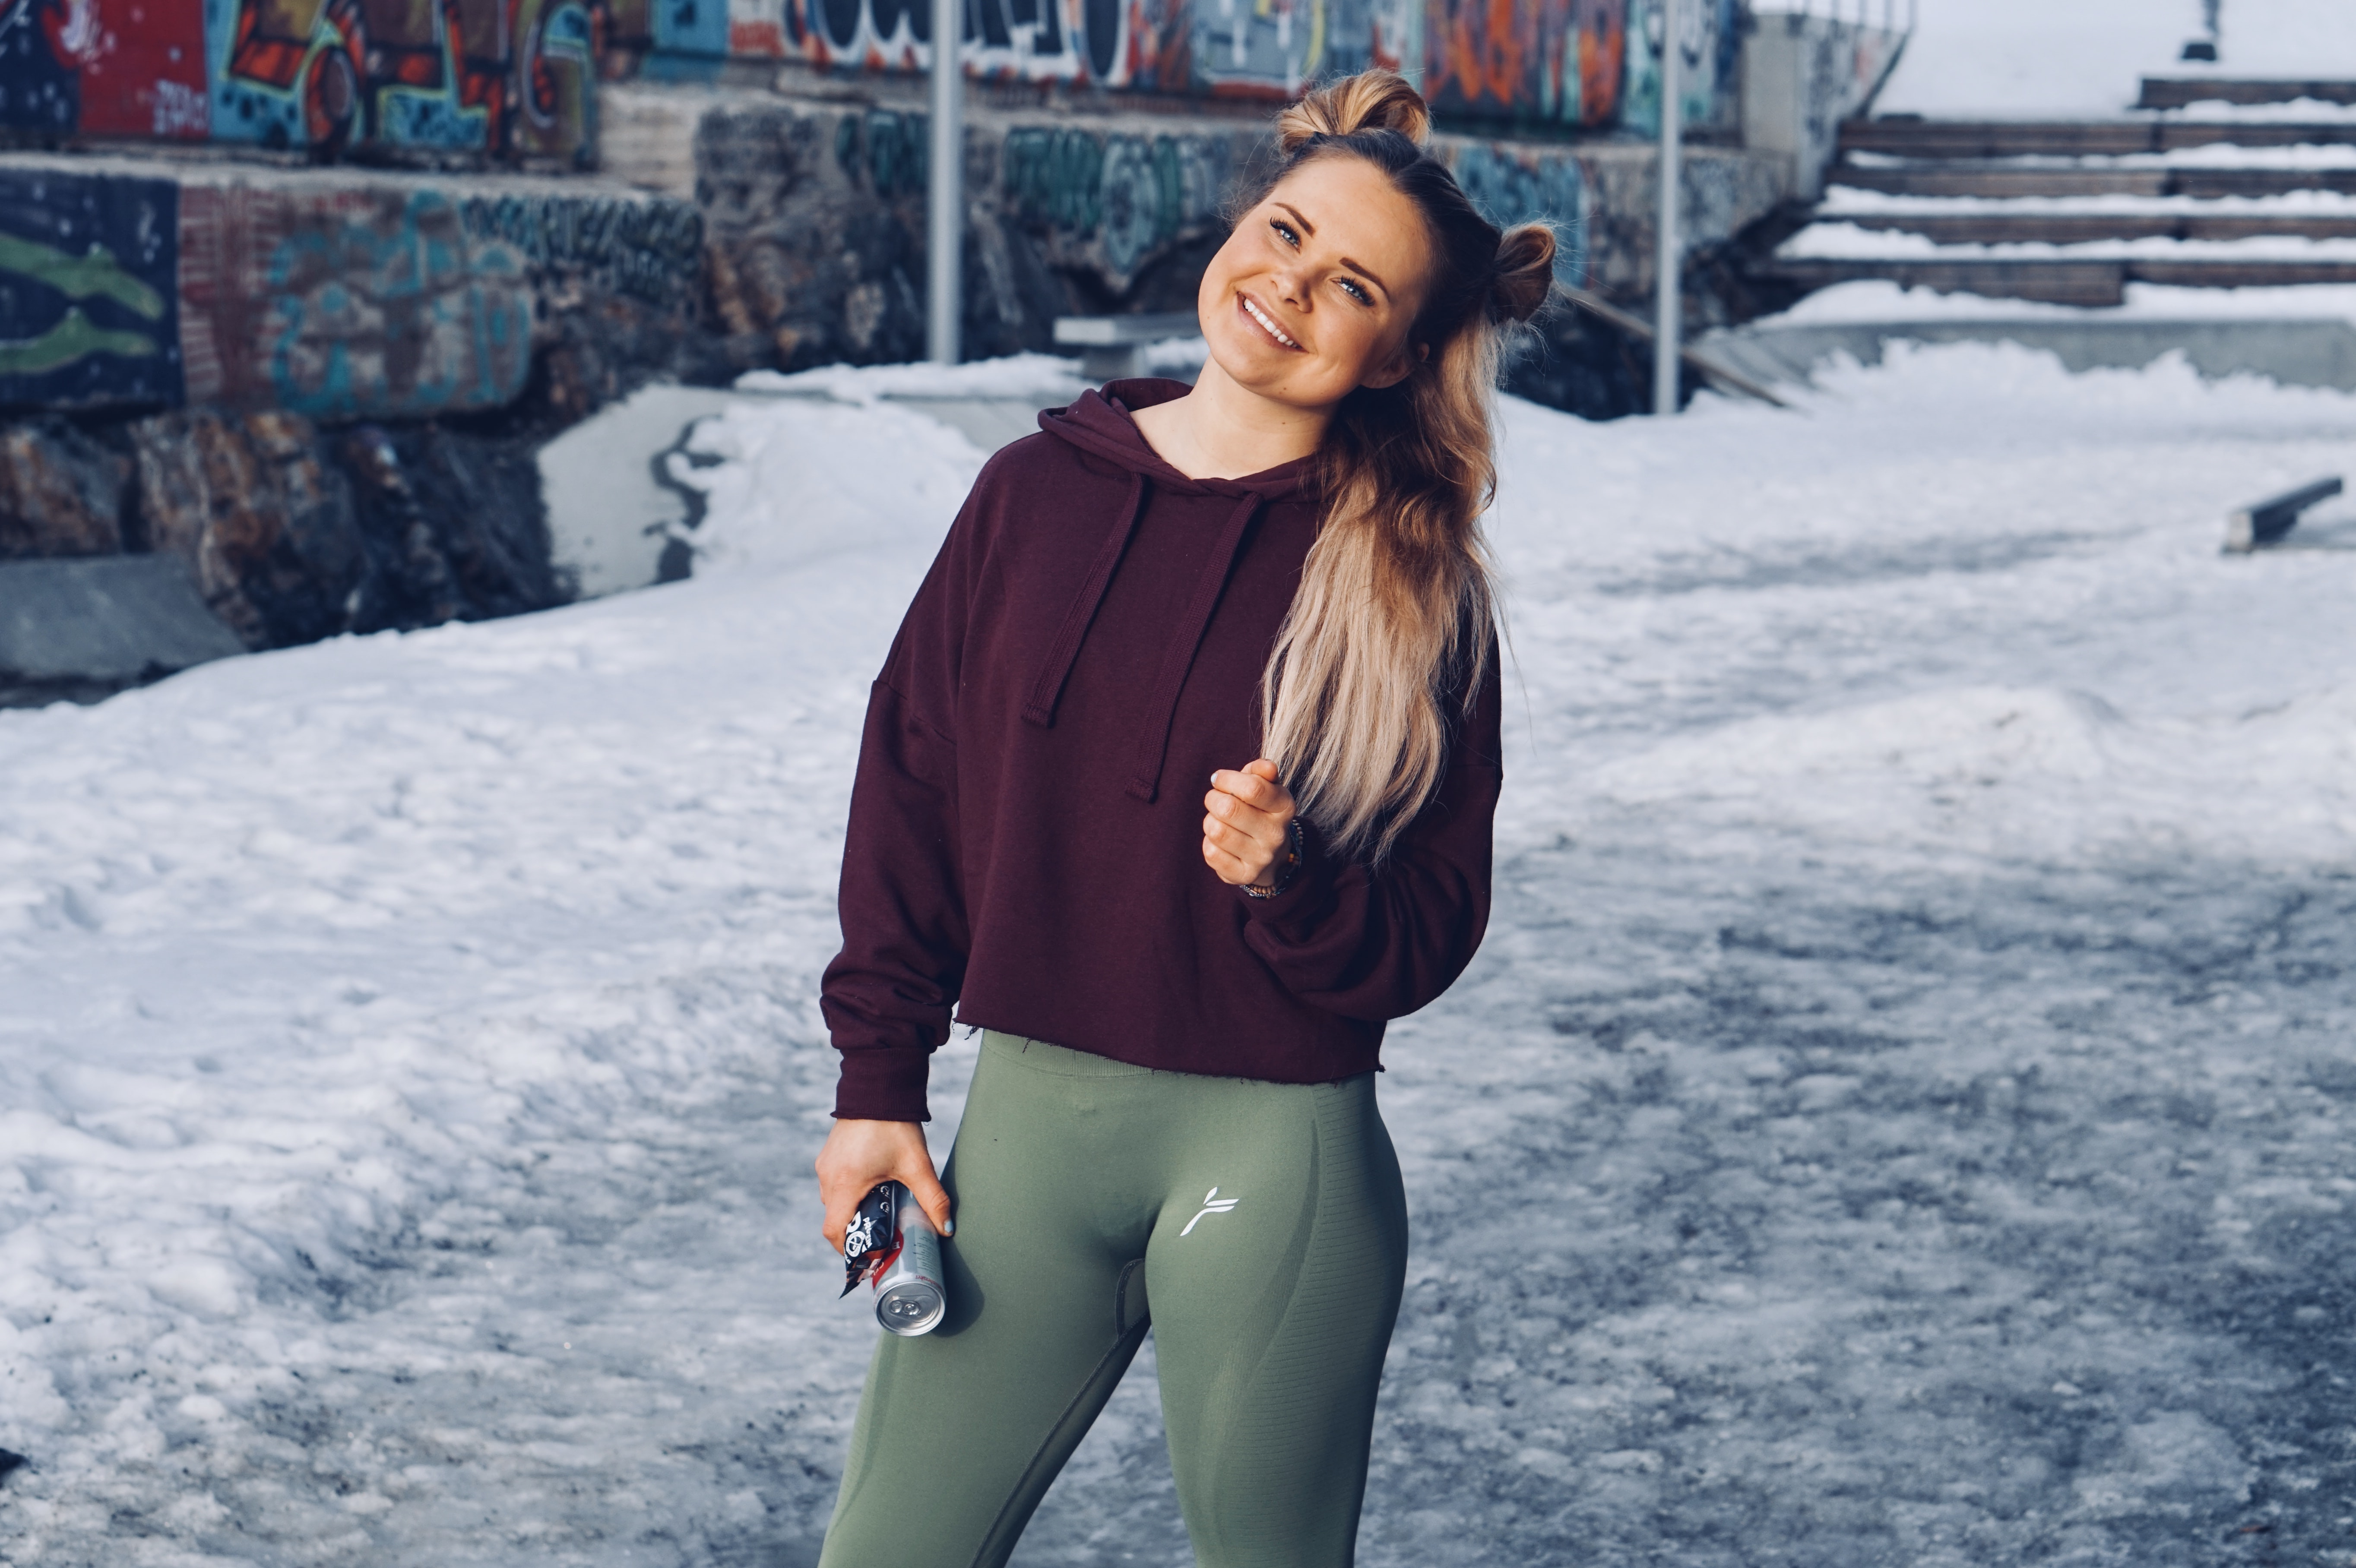 smiling woman tilting its while holding can standing on snow